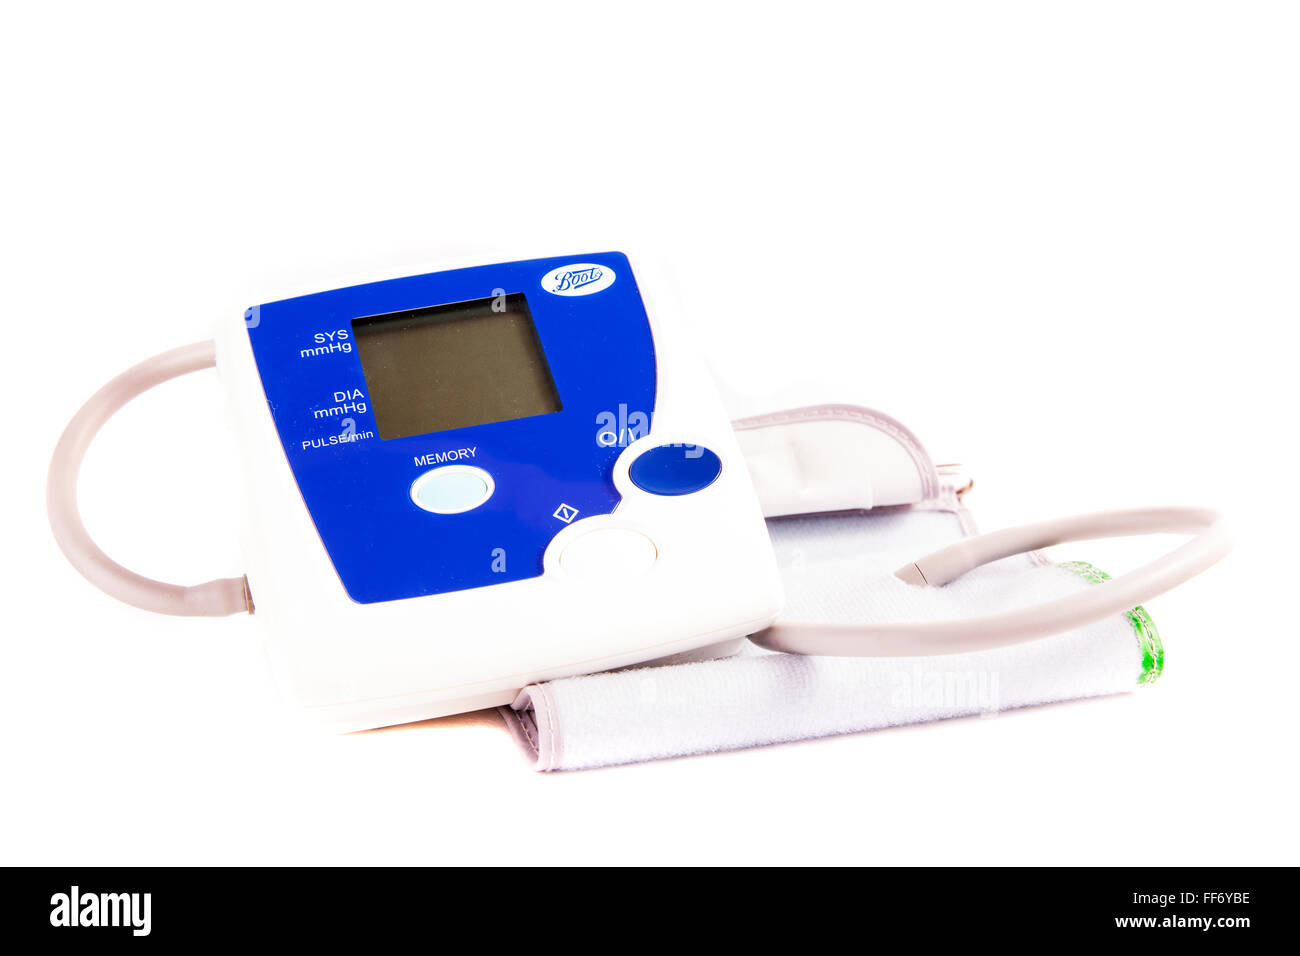 Blood pressure arm monitor machine for home health check use cutout cut out white background isolated - Stock Image